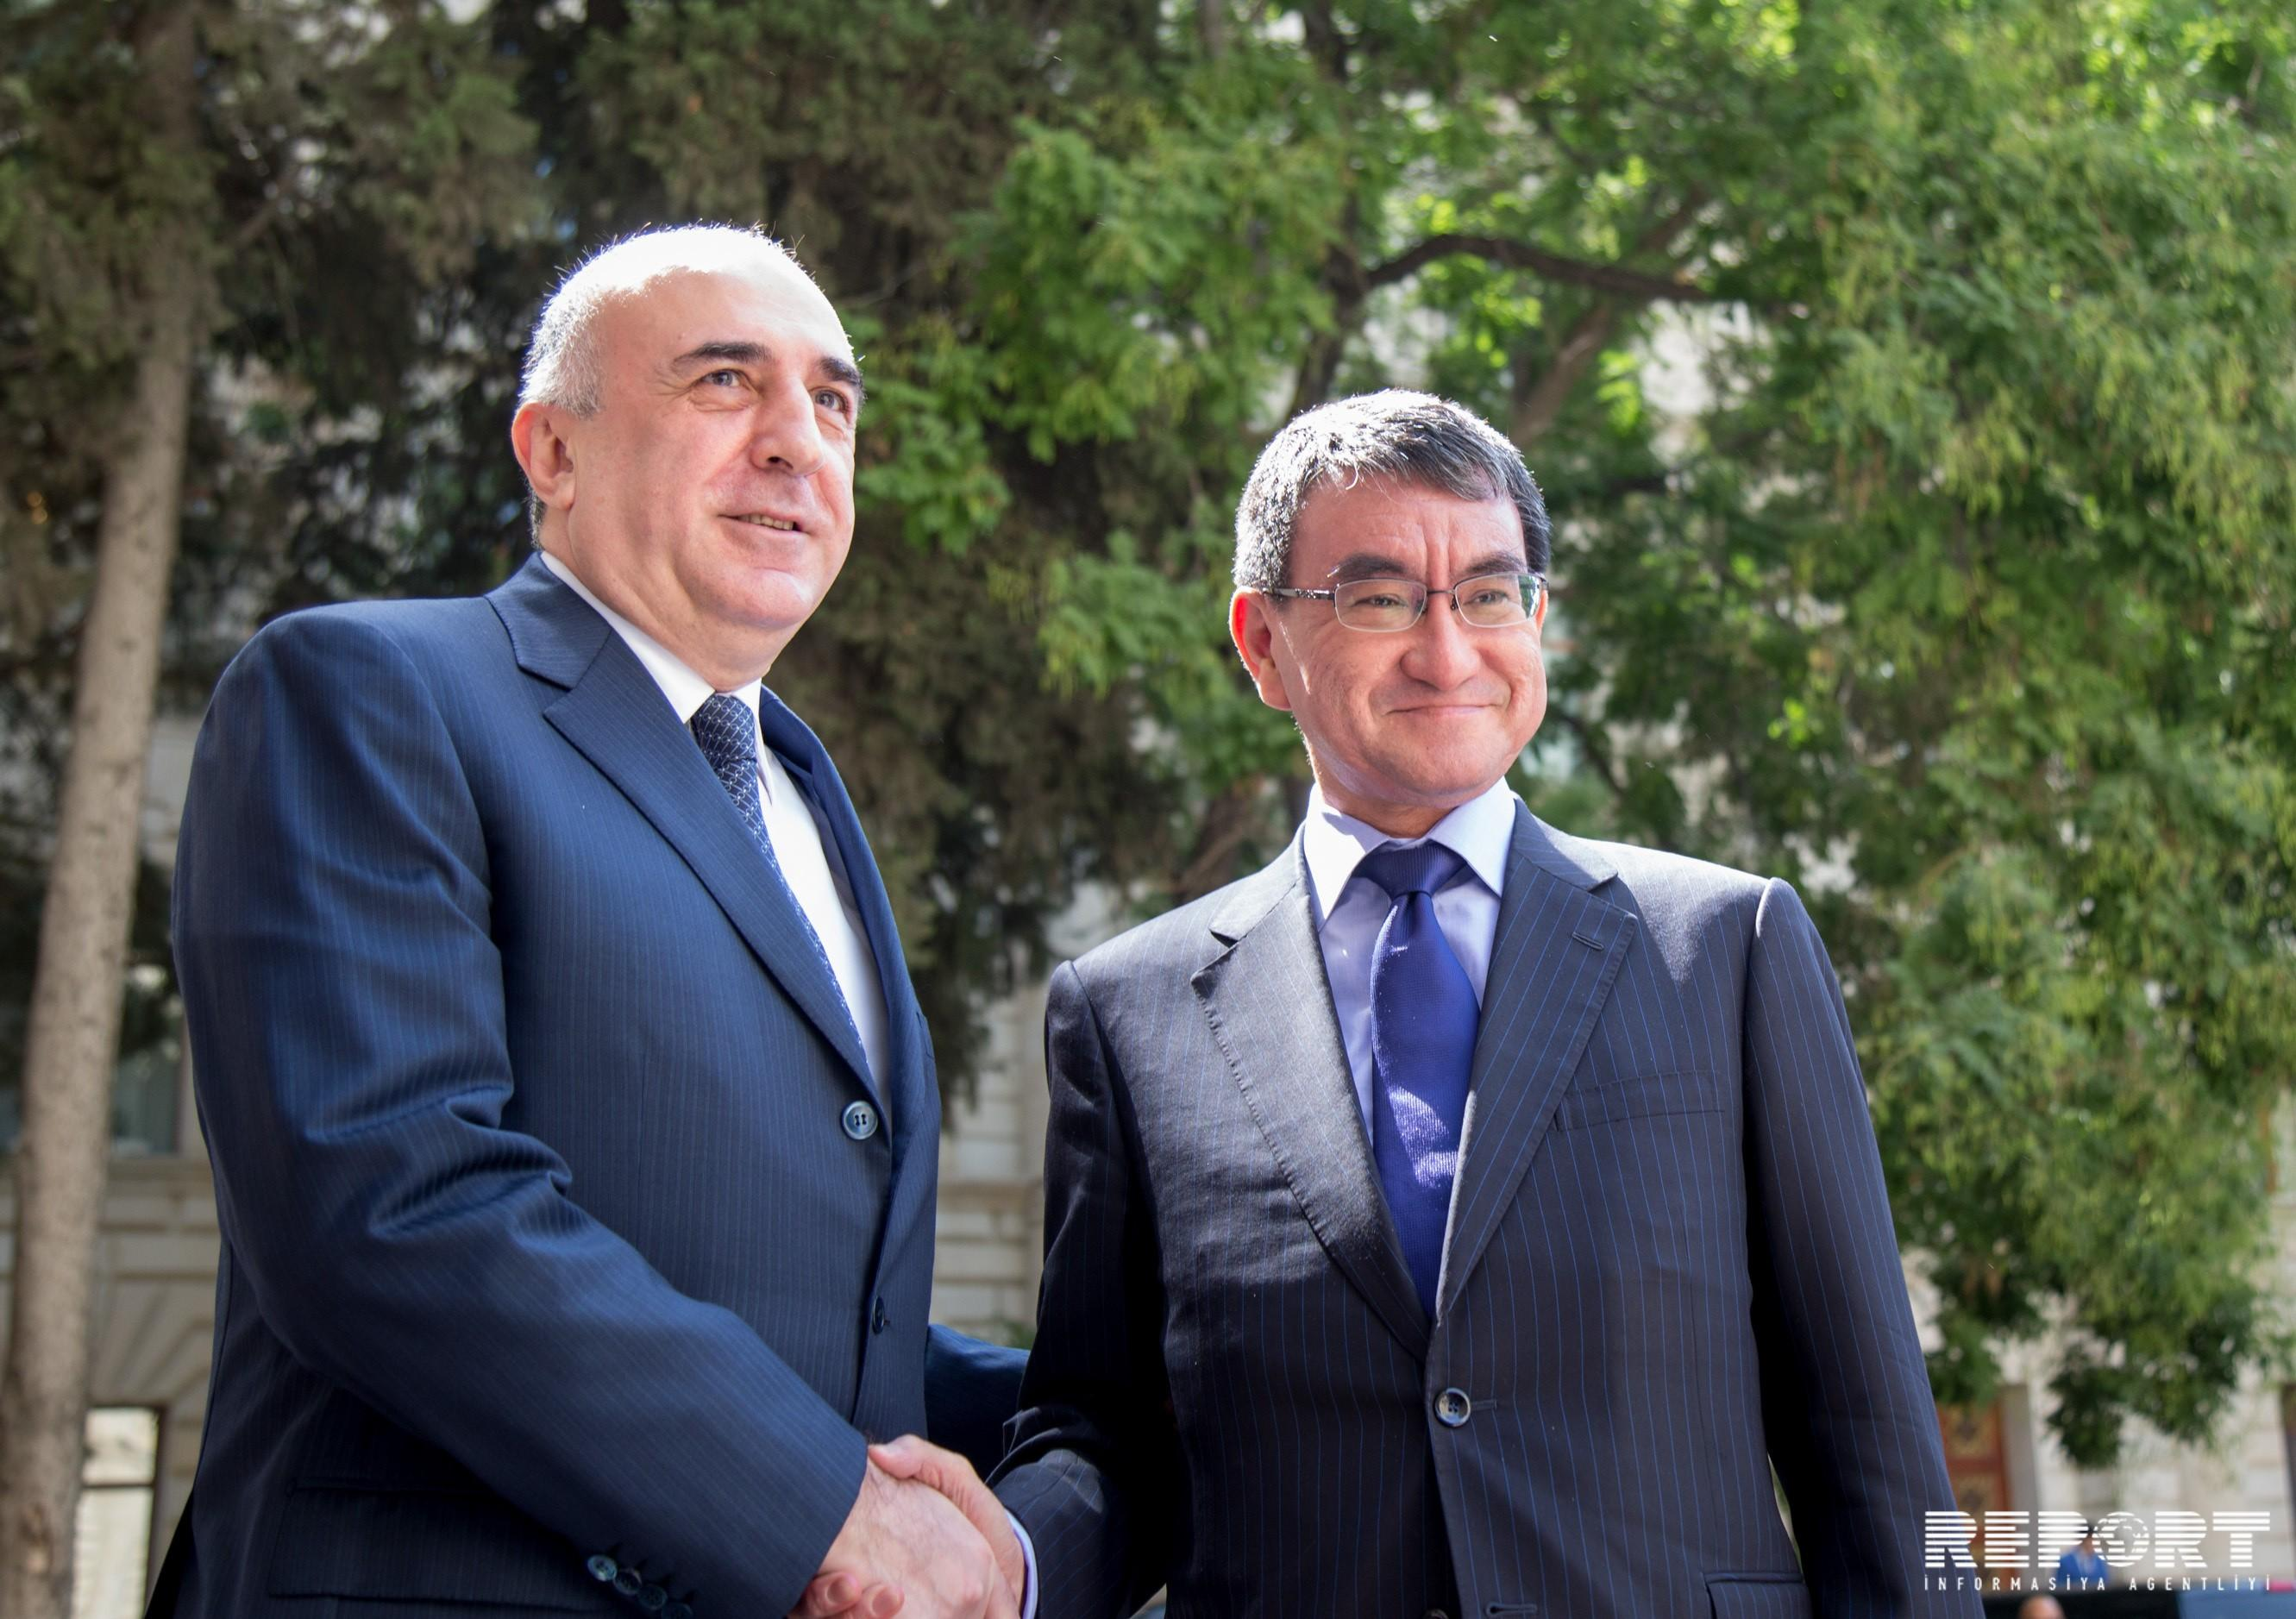 Meeting of Azerbaijani and Japanese Foreign Ministers underway in Baku - UPDATED